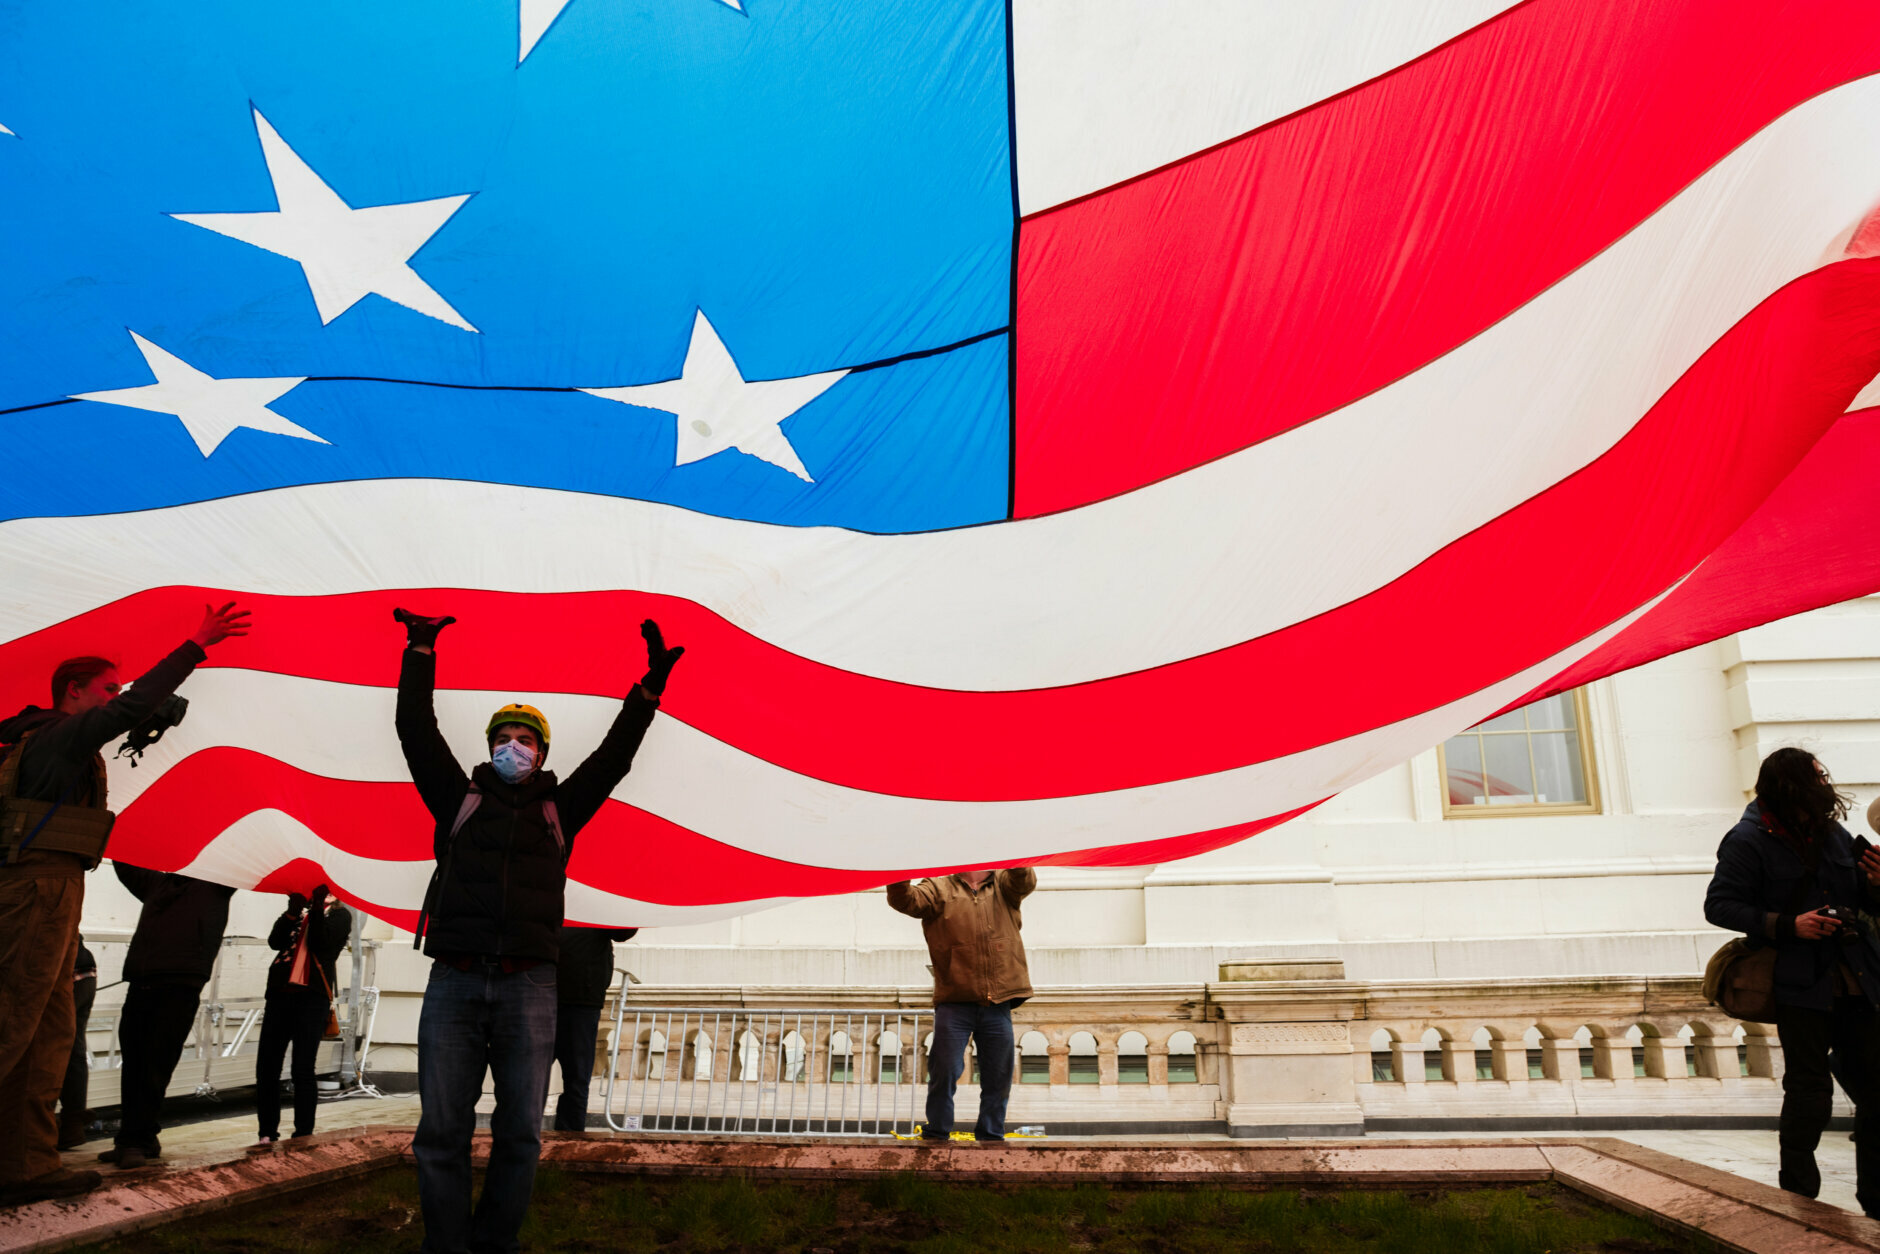 WASHINGTON, DC - JANUARY 06: A group of pro-Trump protesters raise a giant America Flag on the West grounds of the Capitol Building on January 6, 2021 in Washington, DC. A pro-Trump mob stormed the Capitol, breaking windows and clashing with police officers. Trump supporters gathered in the nation's capital today to protest the ratification of President-elect Joe Biden's Electoral College victory over President Trump in the 2020 election. (Photo by Jon Cherry/Getty Images)